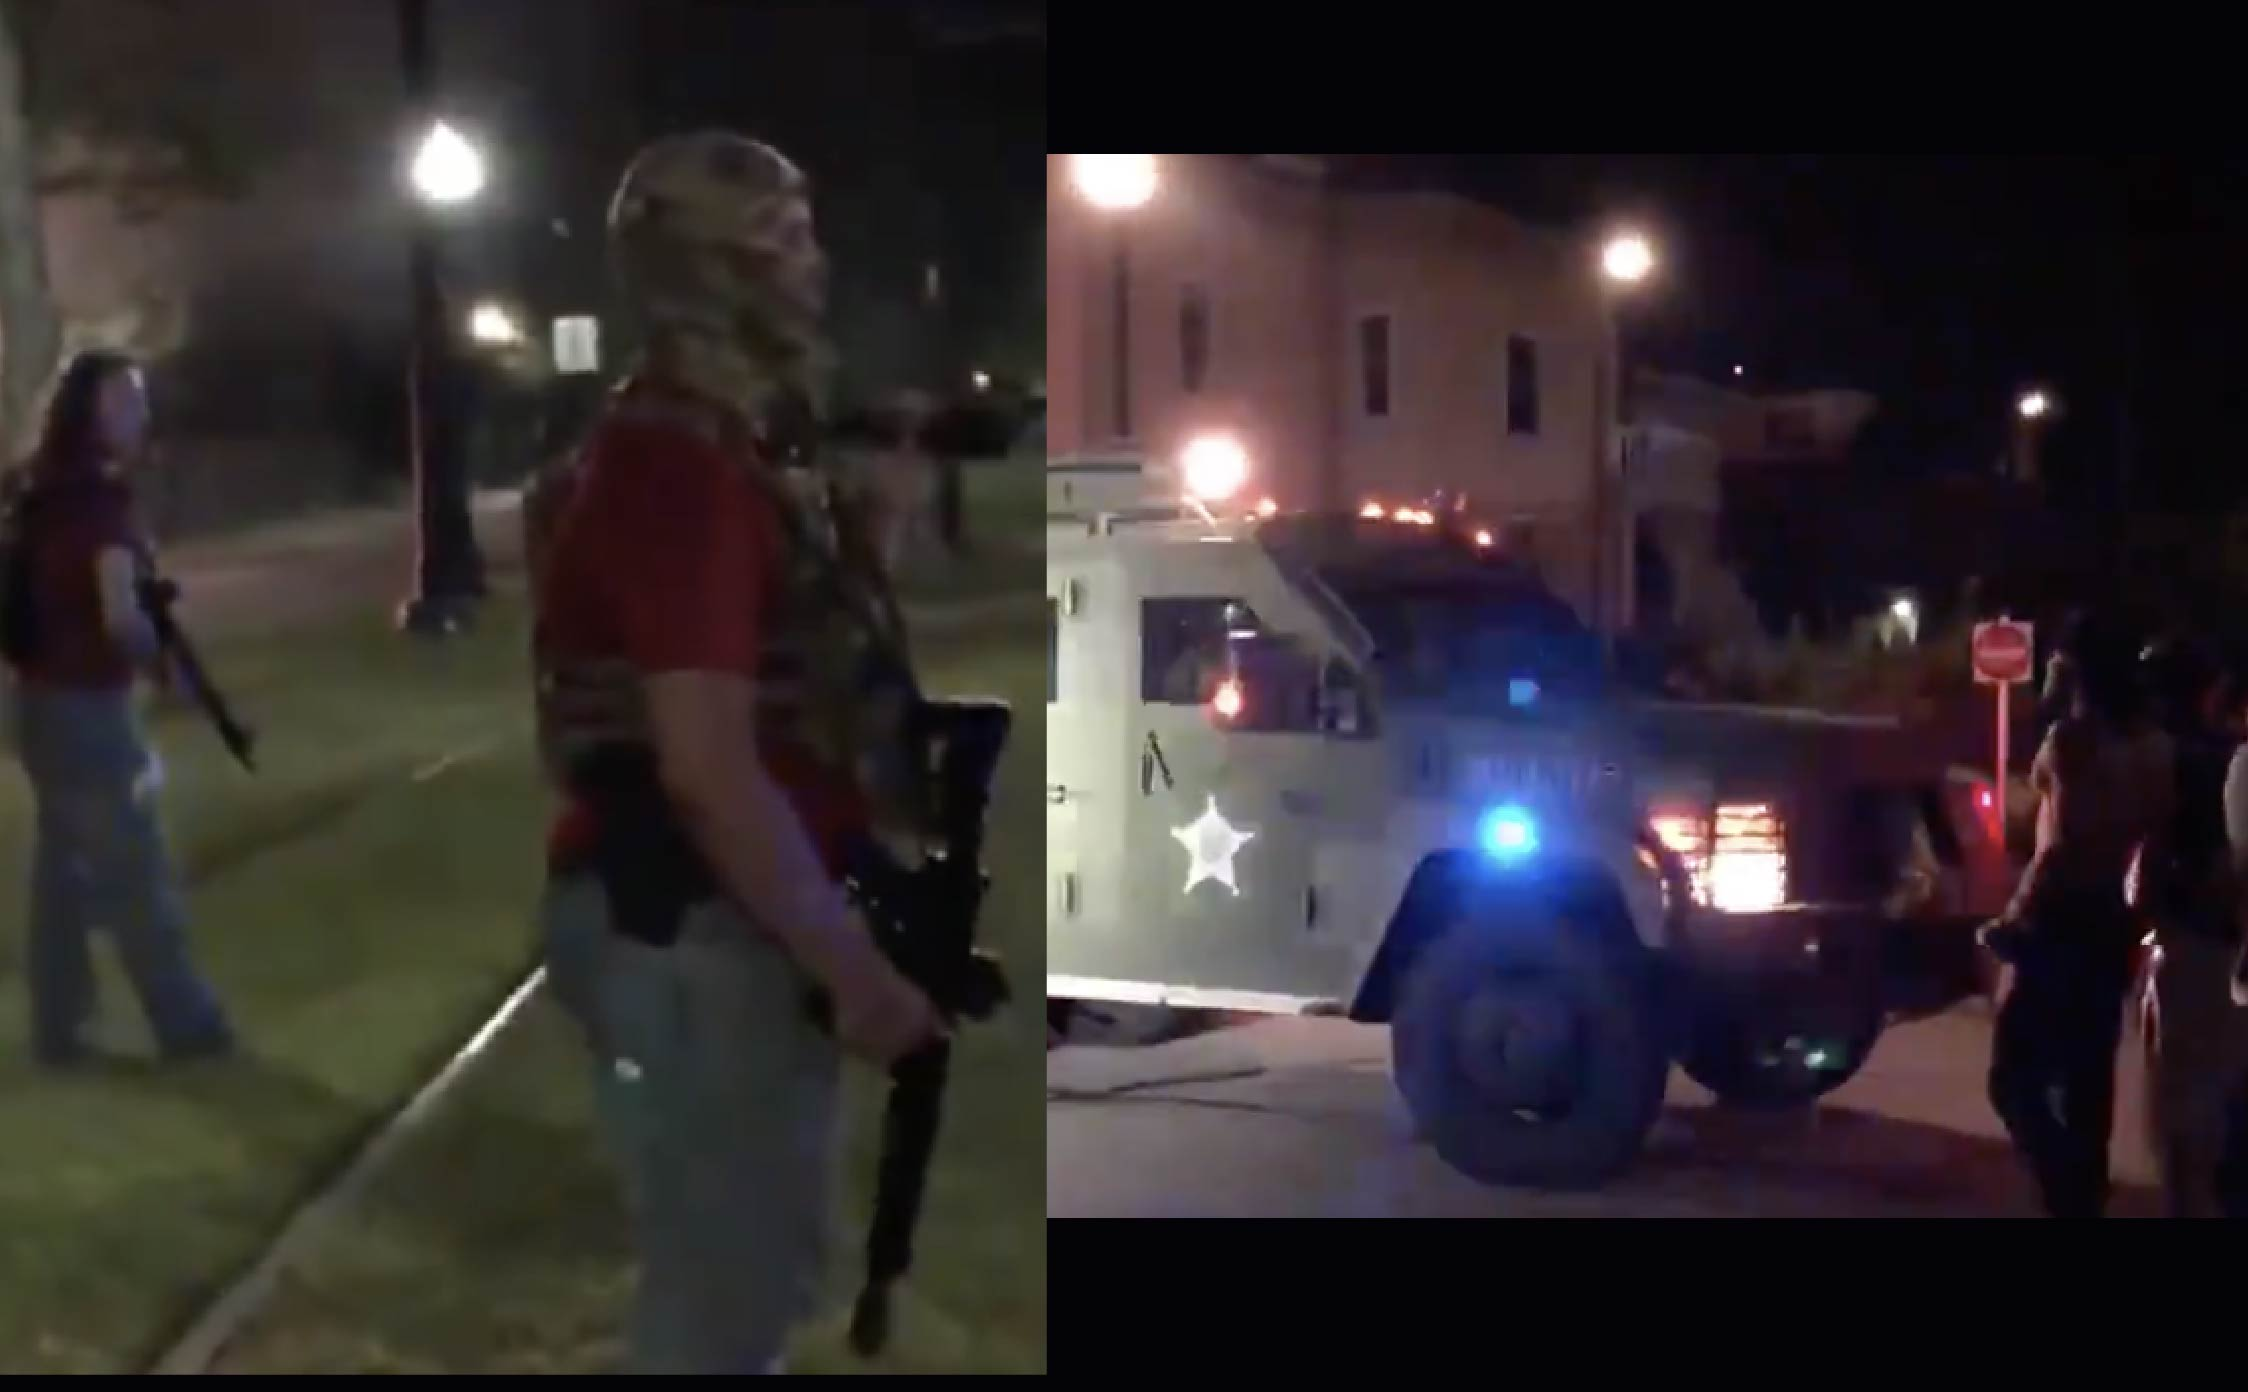 [VIDEO] BLM Mob Armed With Semi-Automatic Rifles Order Sheriff's Vehicle to Stop in Kenosha, WI